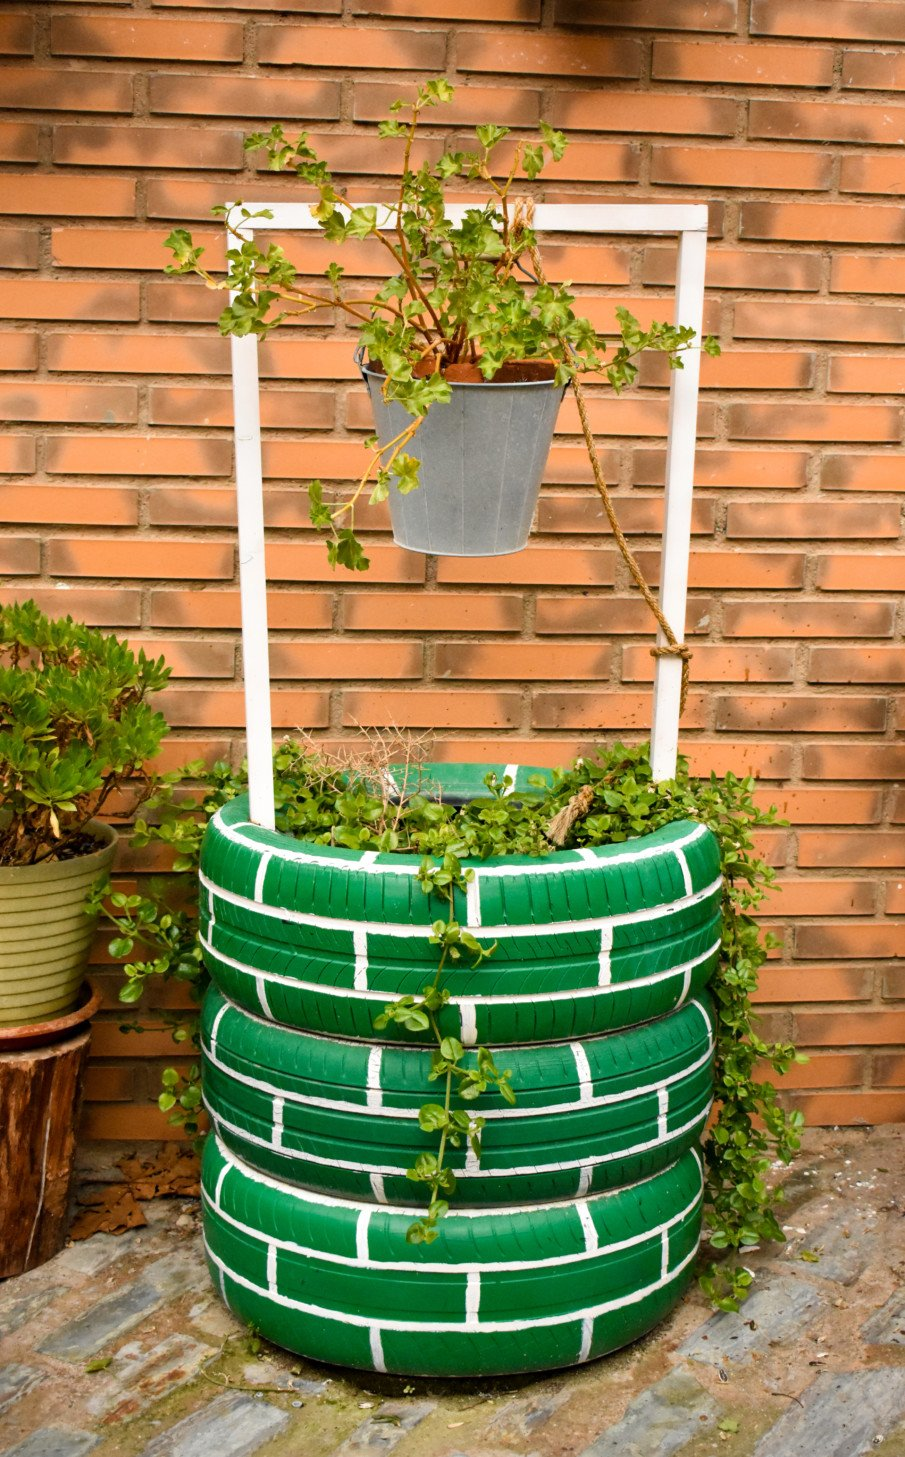 tire planter designed as a wishing well